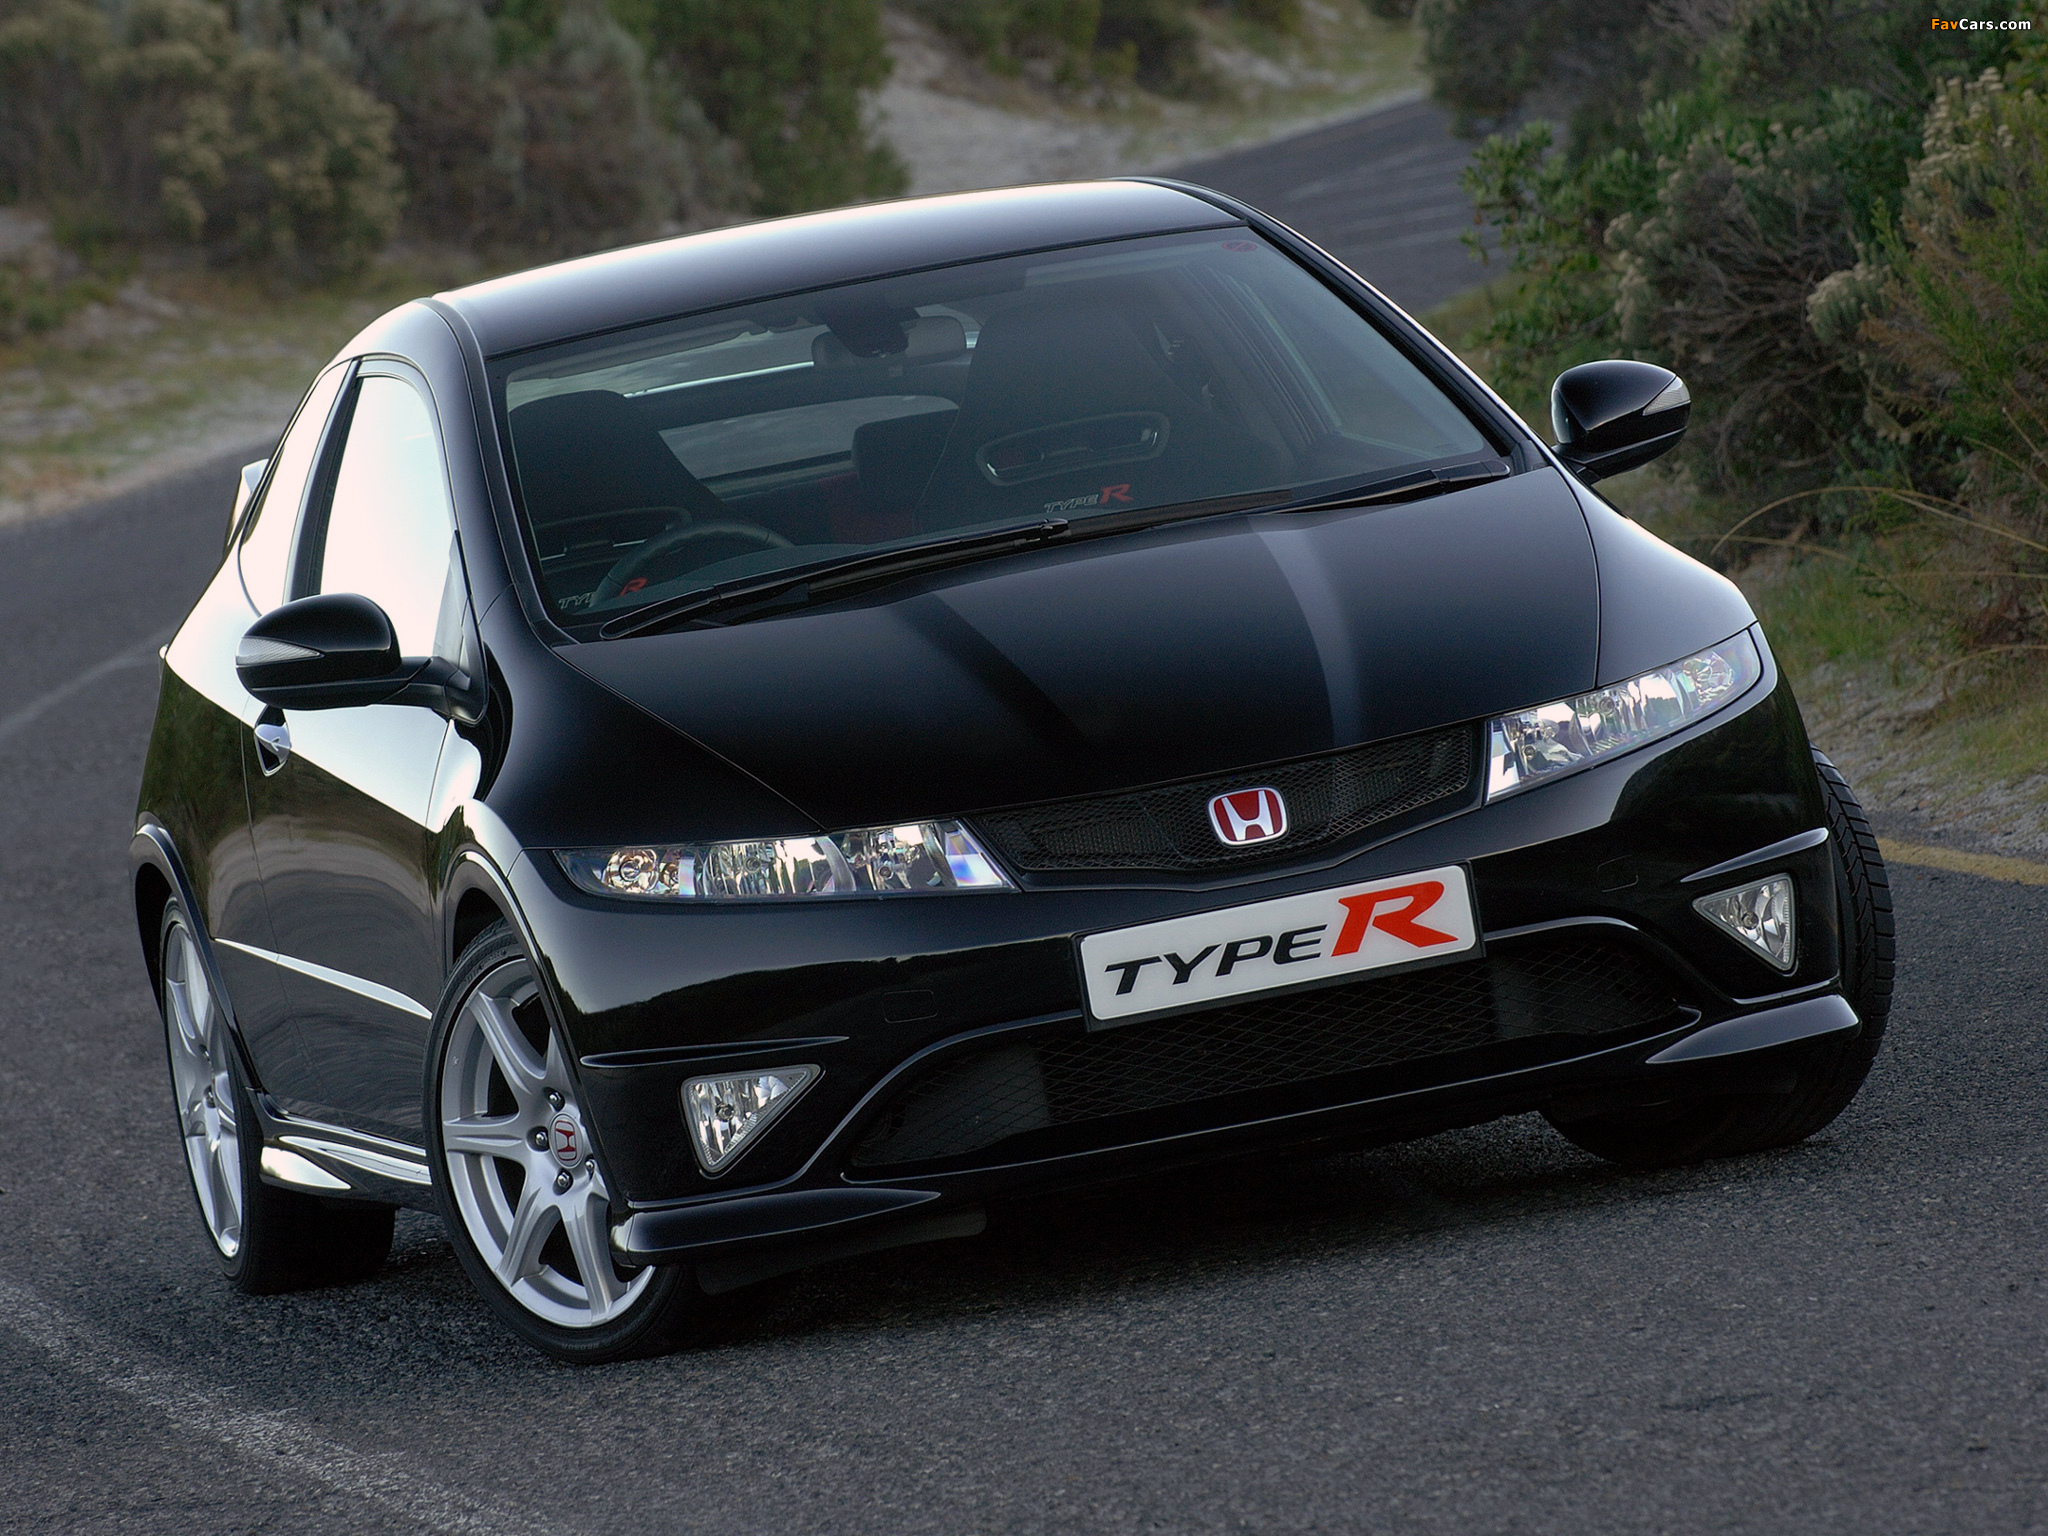 honda civic type r za spec fn2 2007 08 pictures 2048x1536. Black Bedroom Furniture Sets. Home Design Ideas